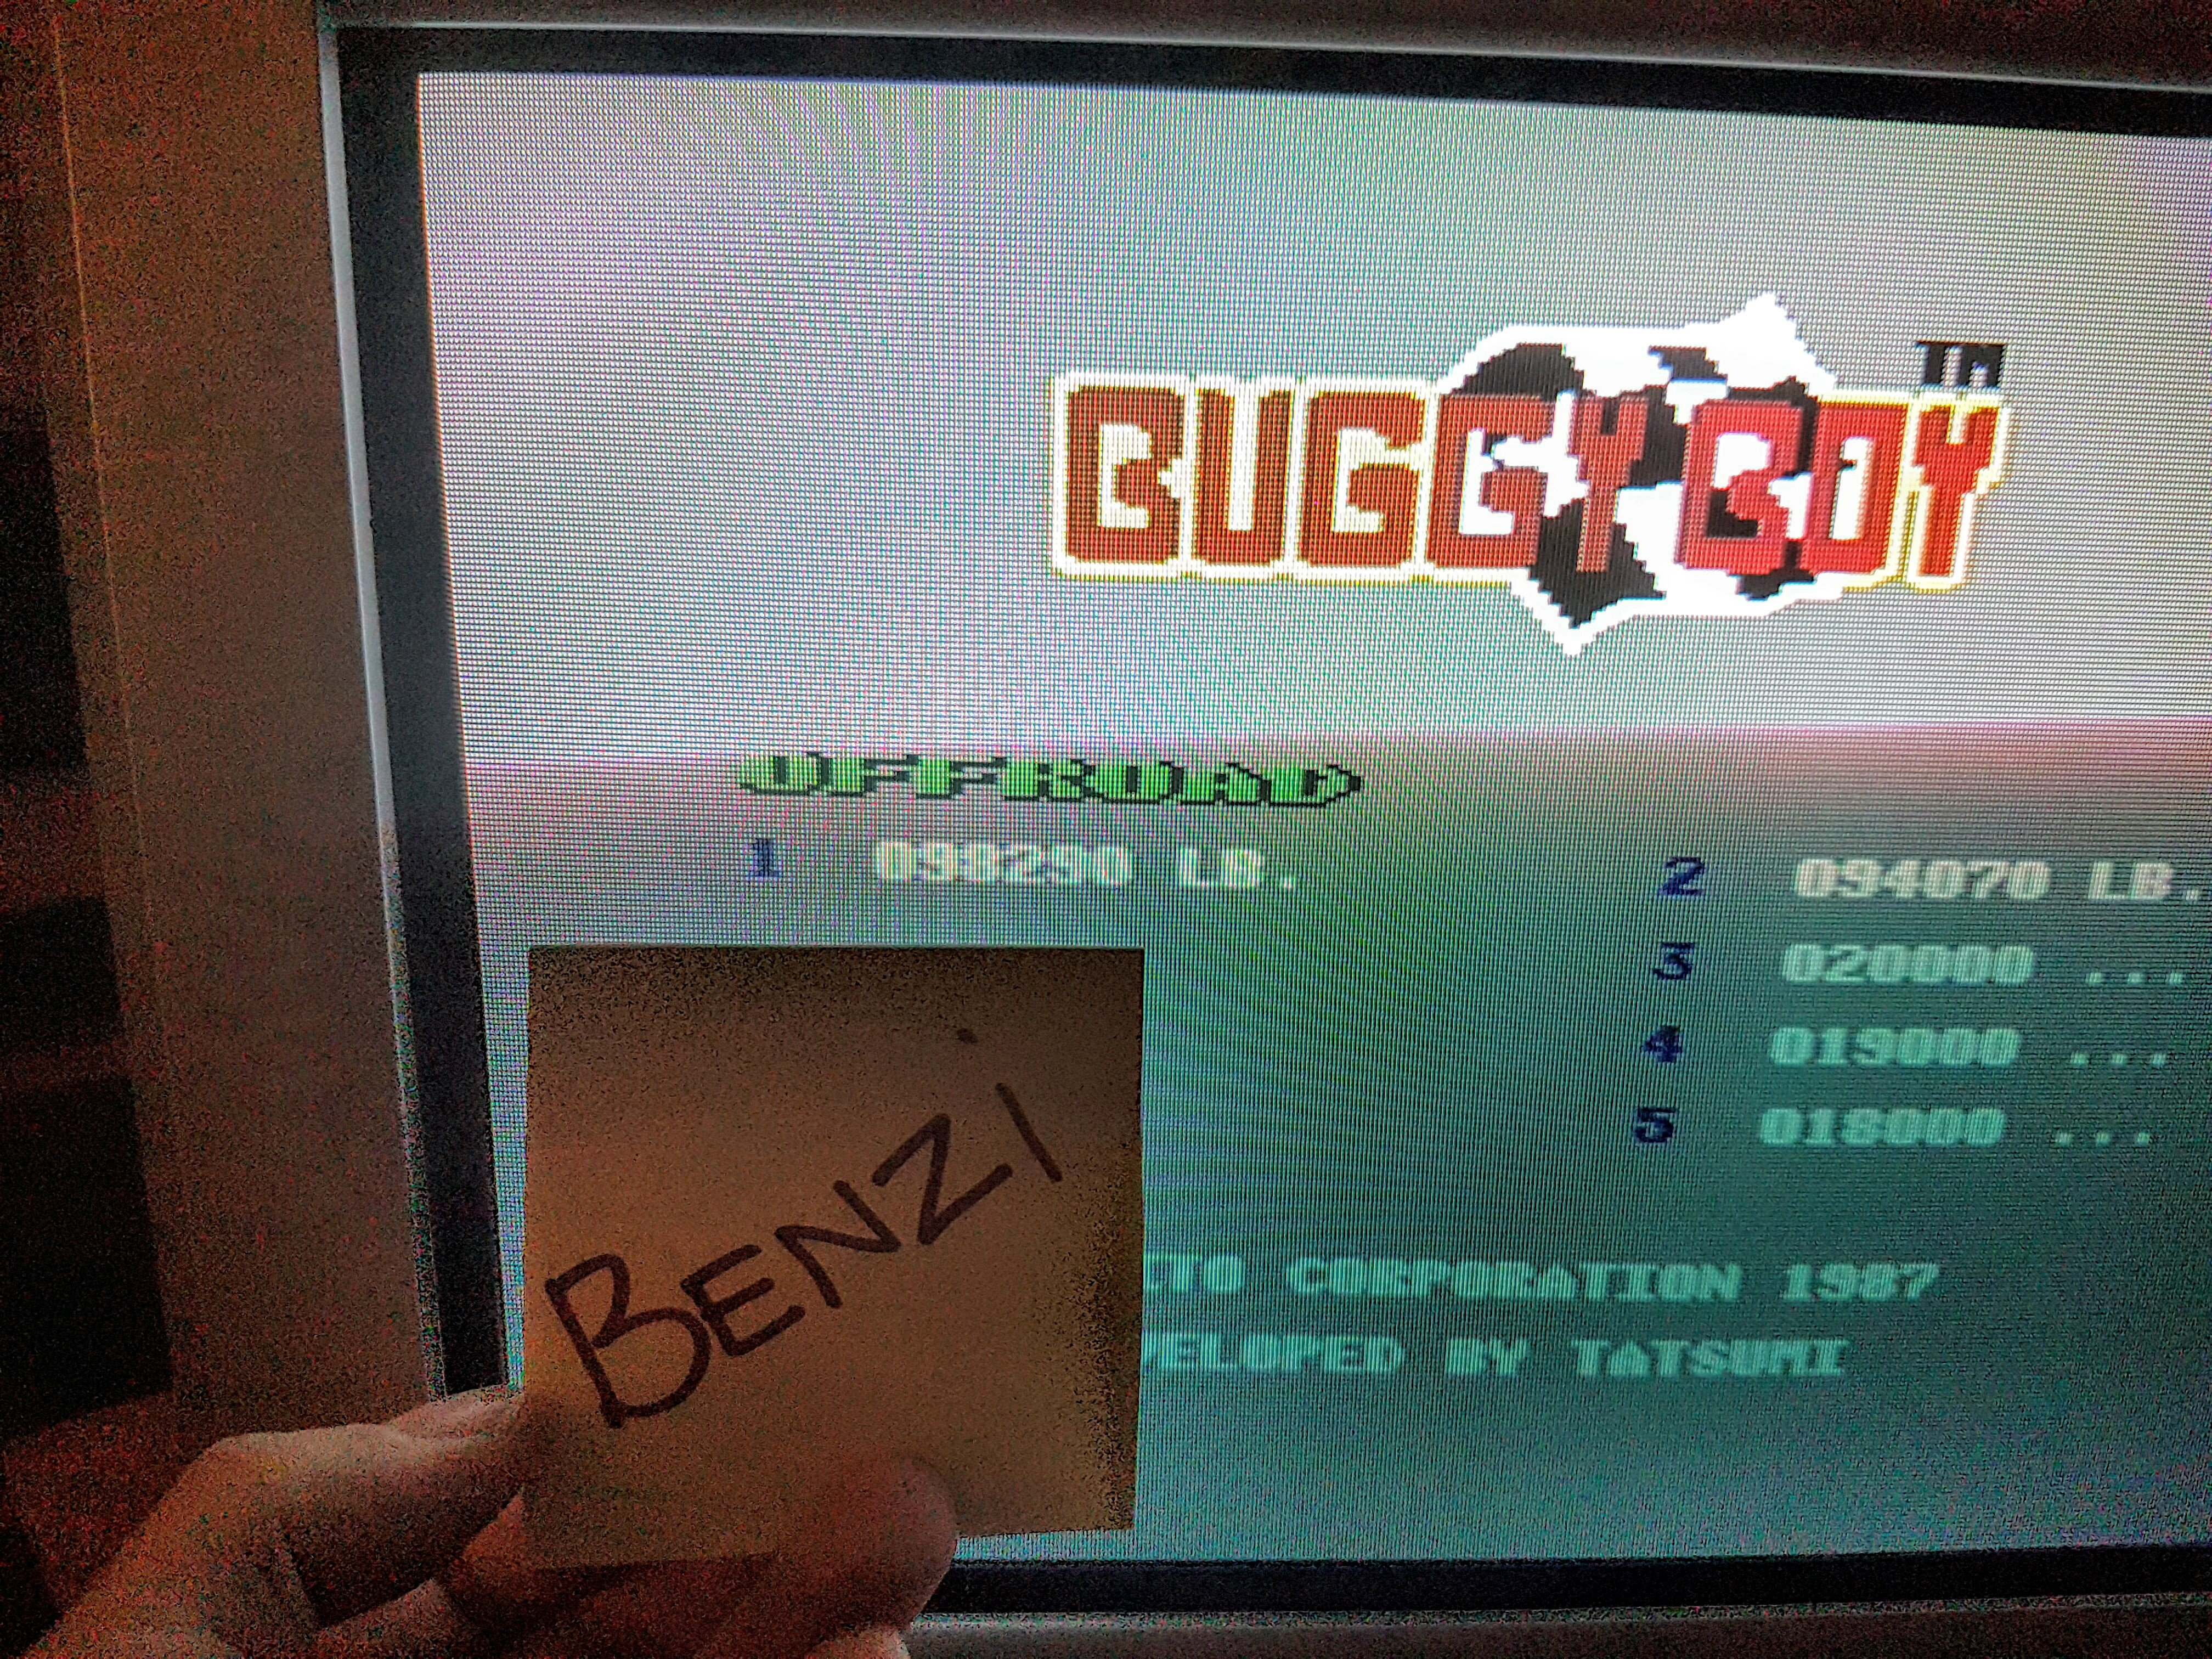 Buggy Boy: Offroad 98,290 points